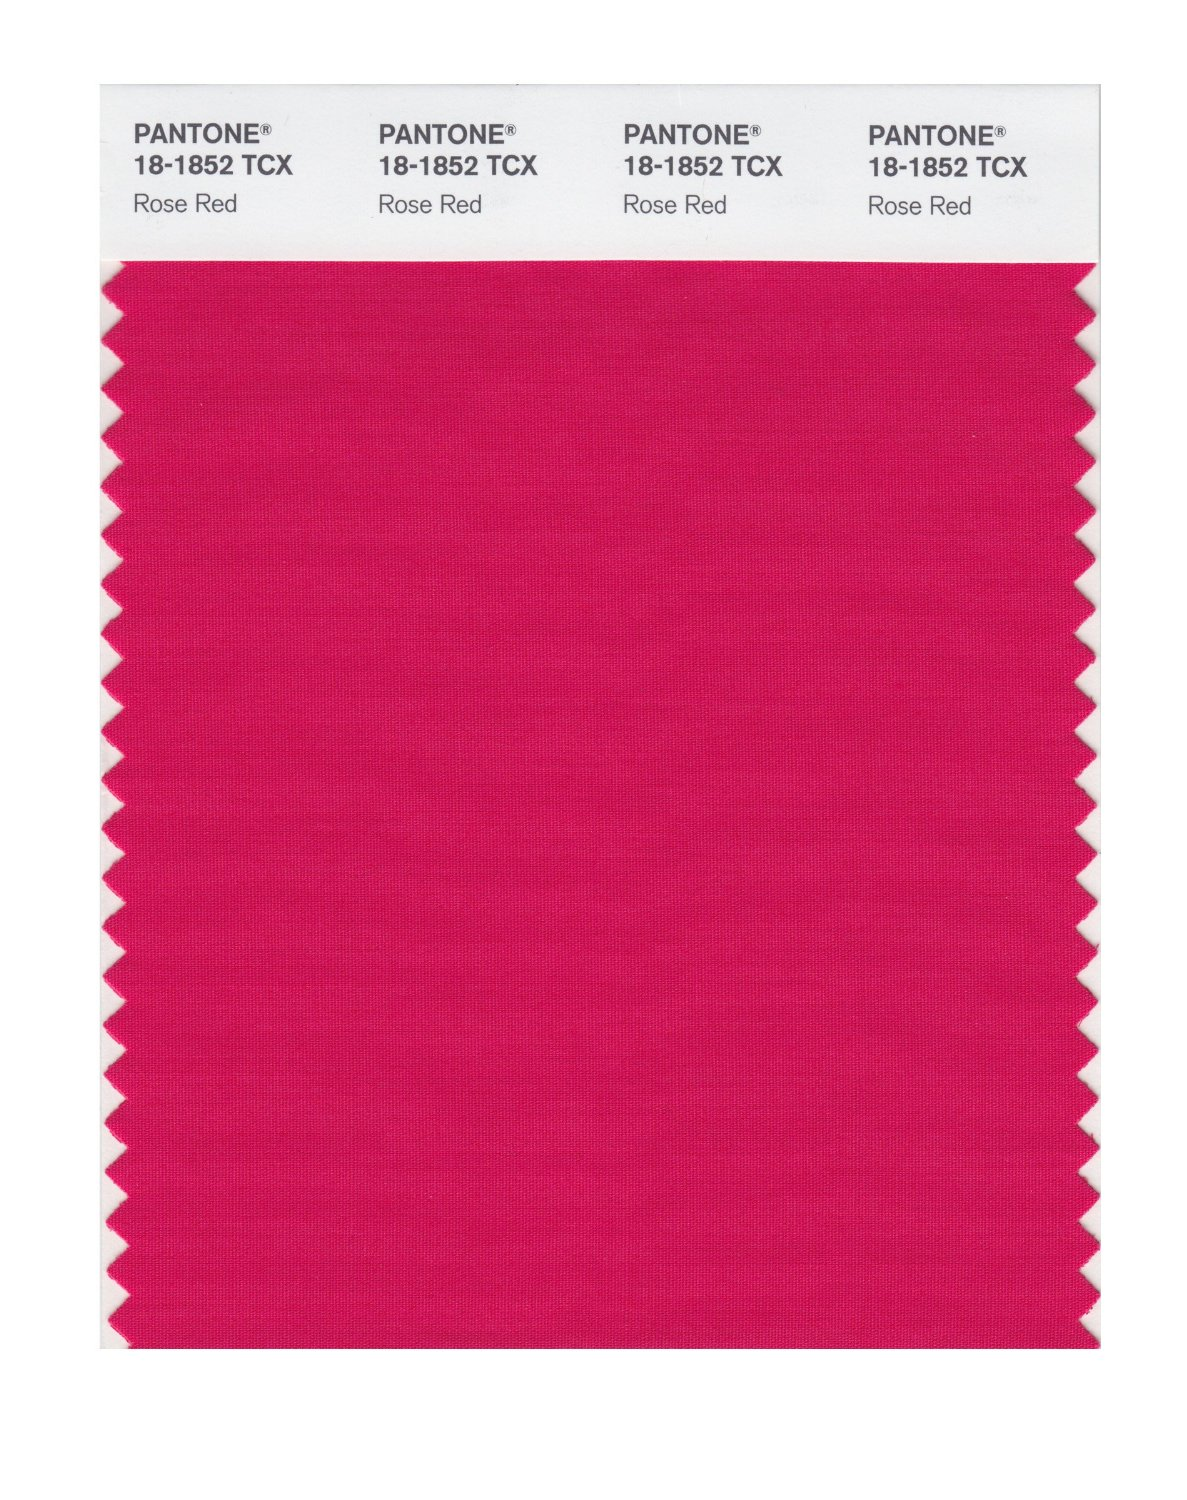 Pantone Smart Swatch 18-1852 Rose Red